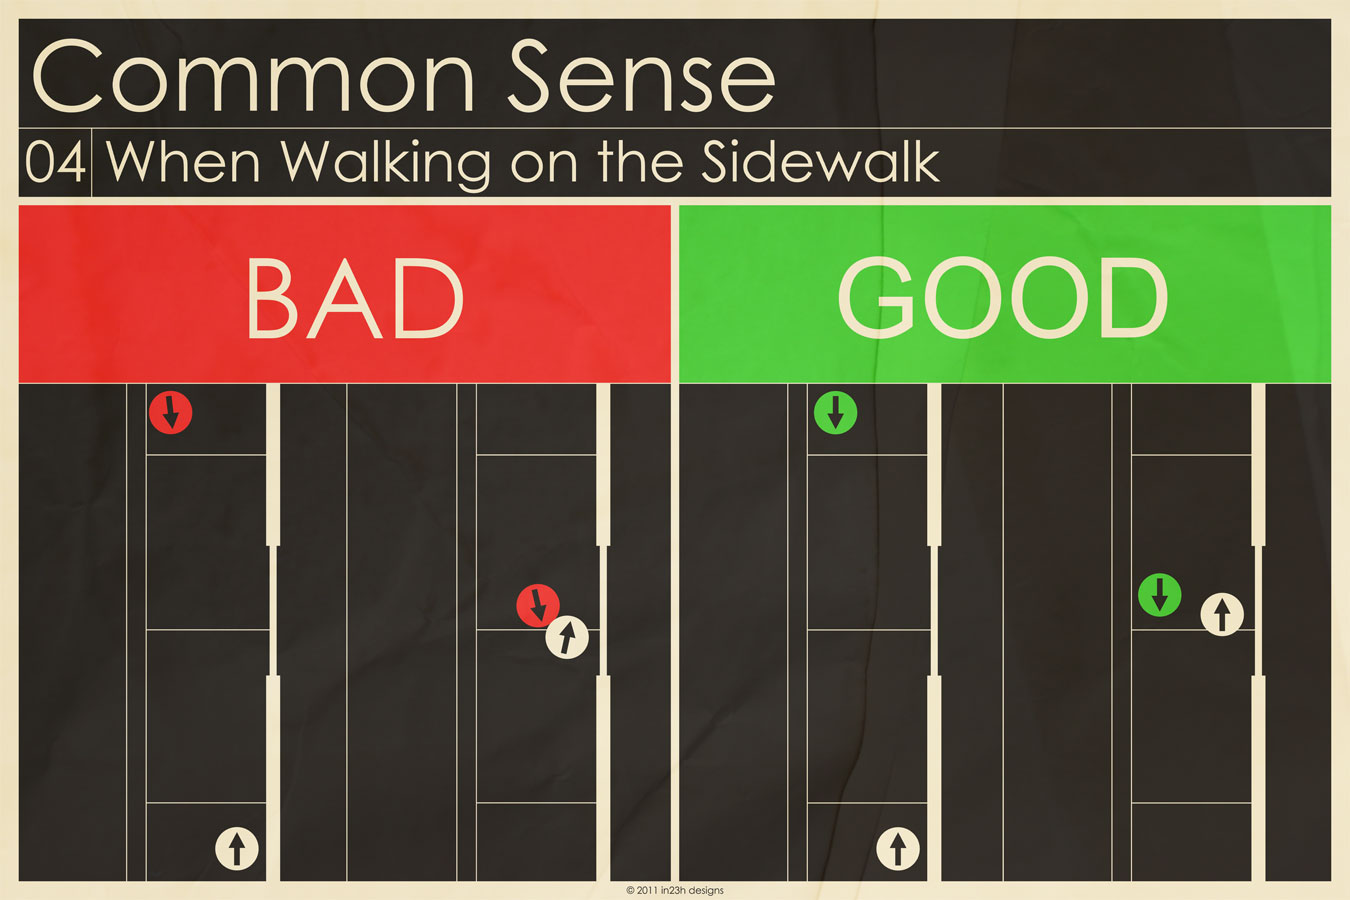 Common Sense 04 - Sidewalk